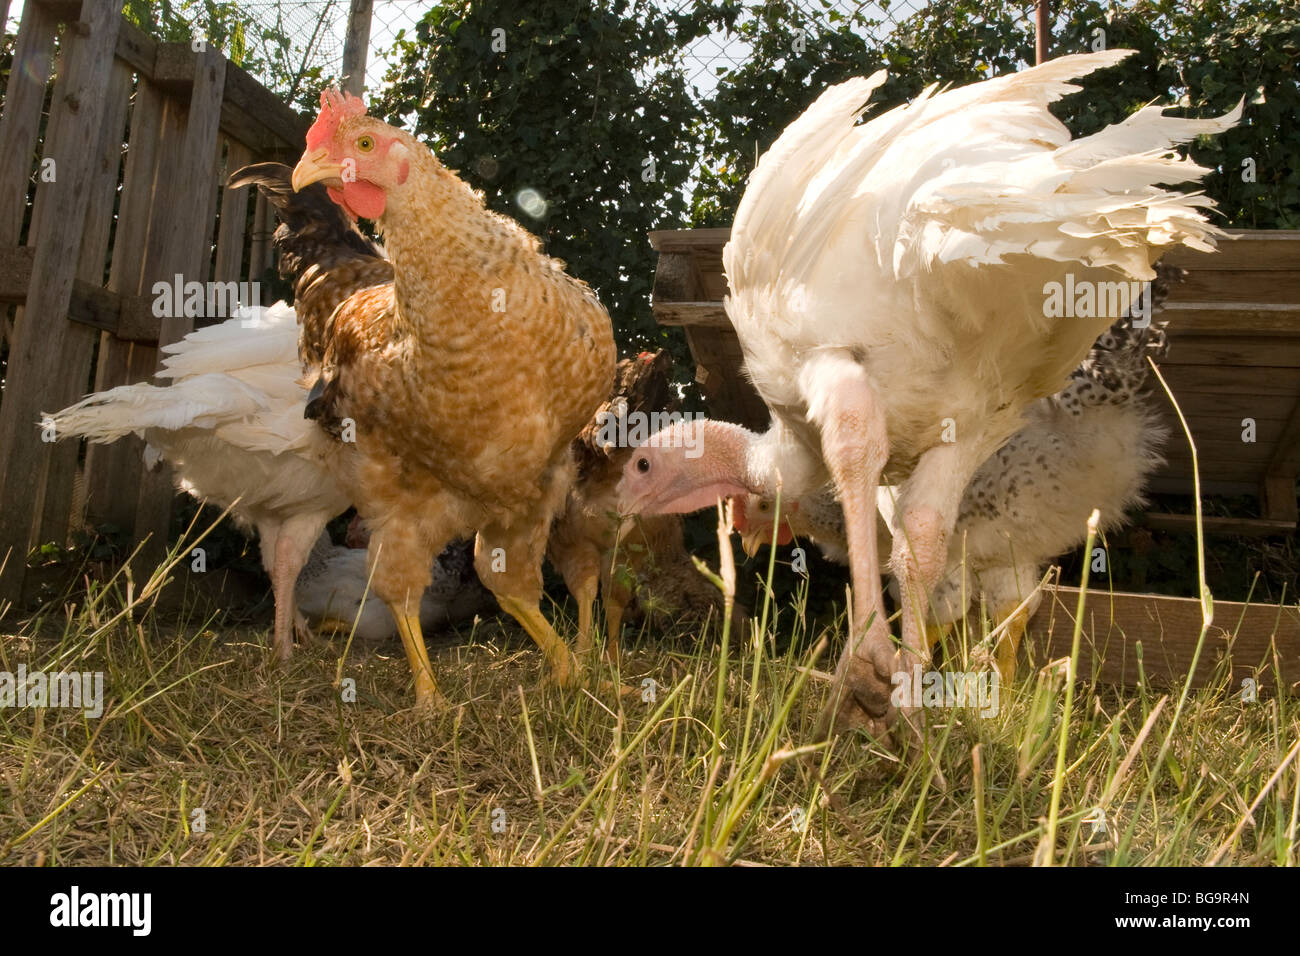 Chickens and turkeys in the henhouse - Stock Image